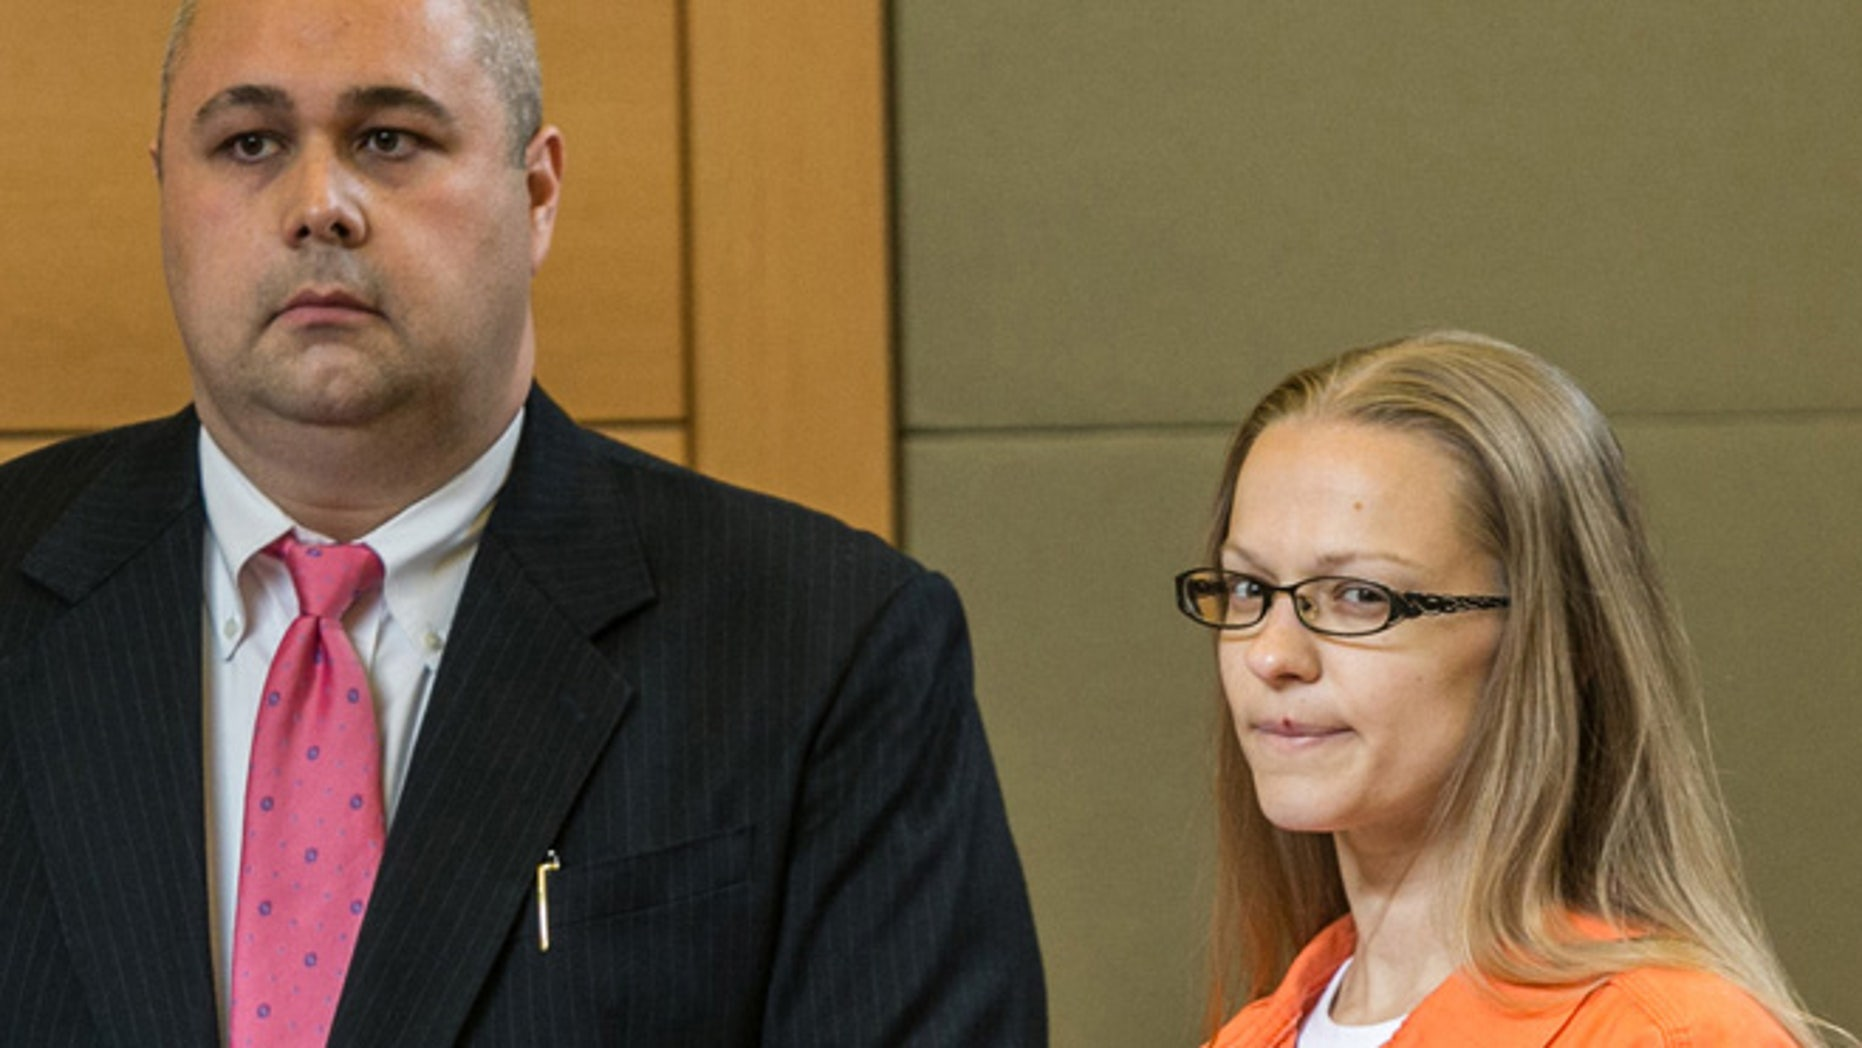 May 13: Angelika Graswald, right, stands in court with Michael Archer a forensic scientist, as her attorneys ask for bail and to unseal the indictment against her during a hearing, in Goshen, N.Y.